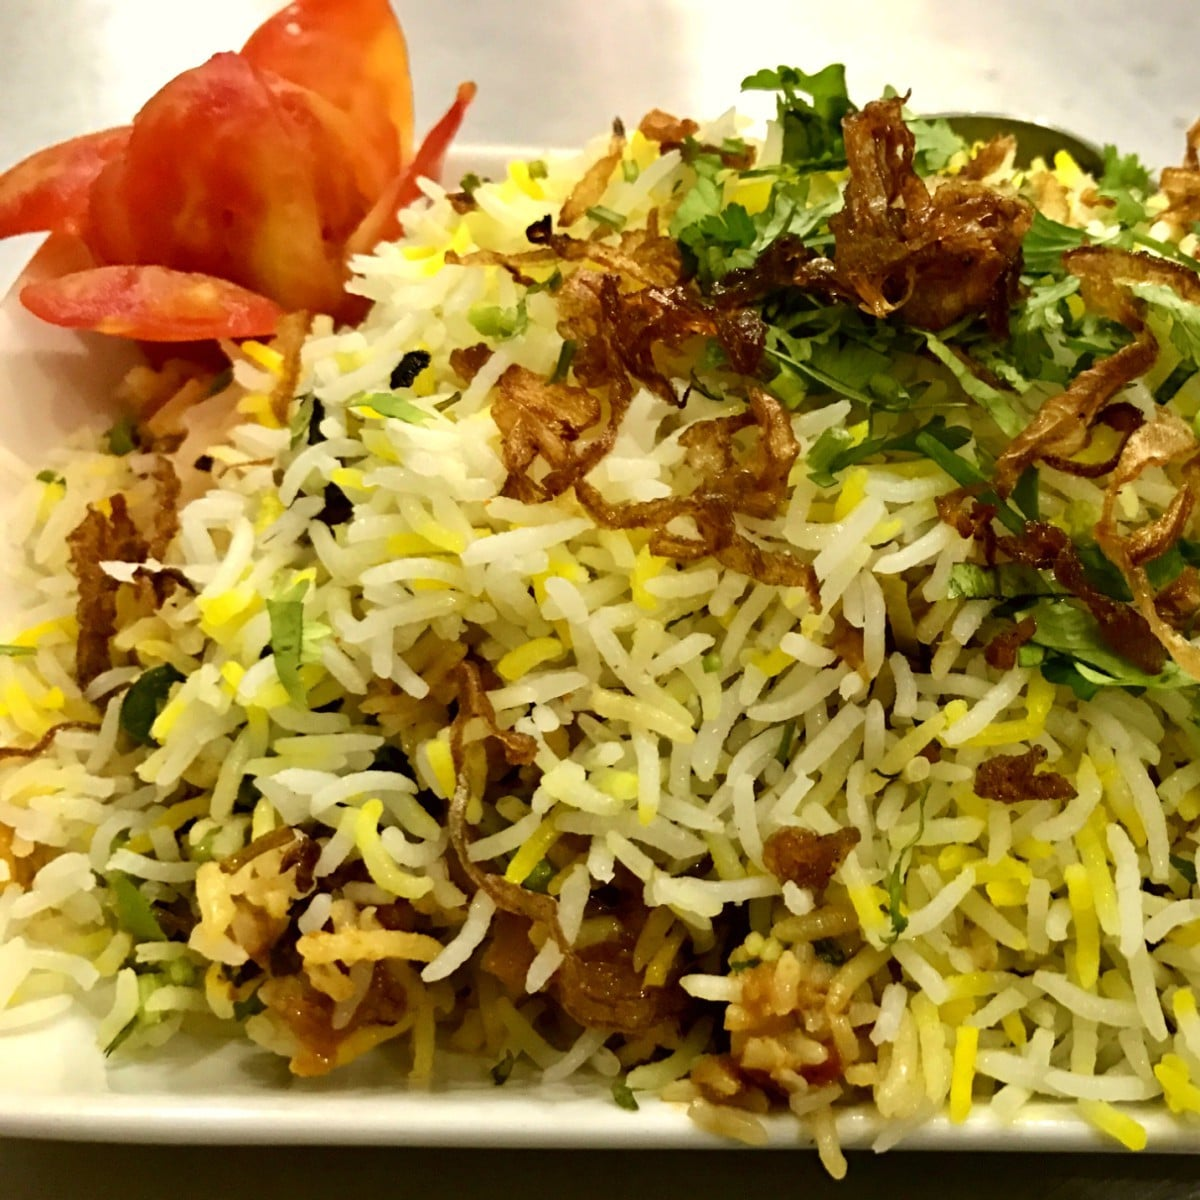 The Bombay biryani was authentic and delicious